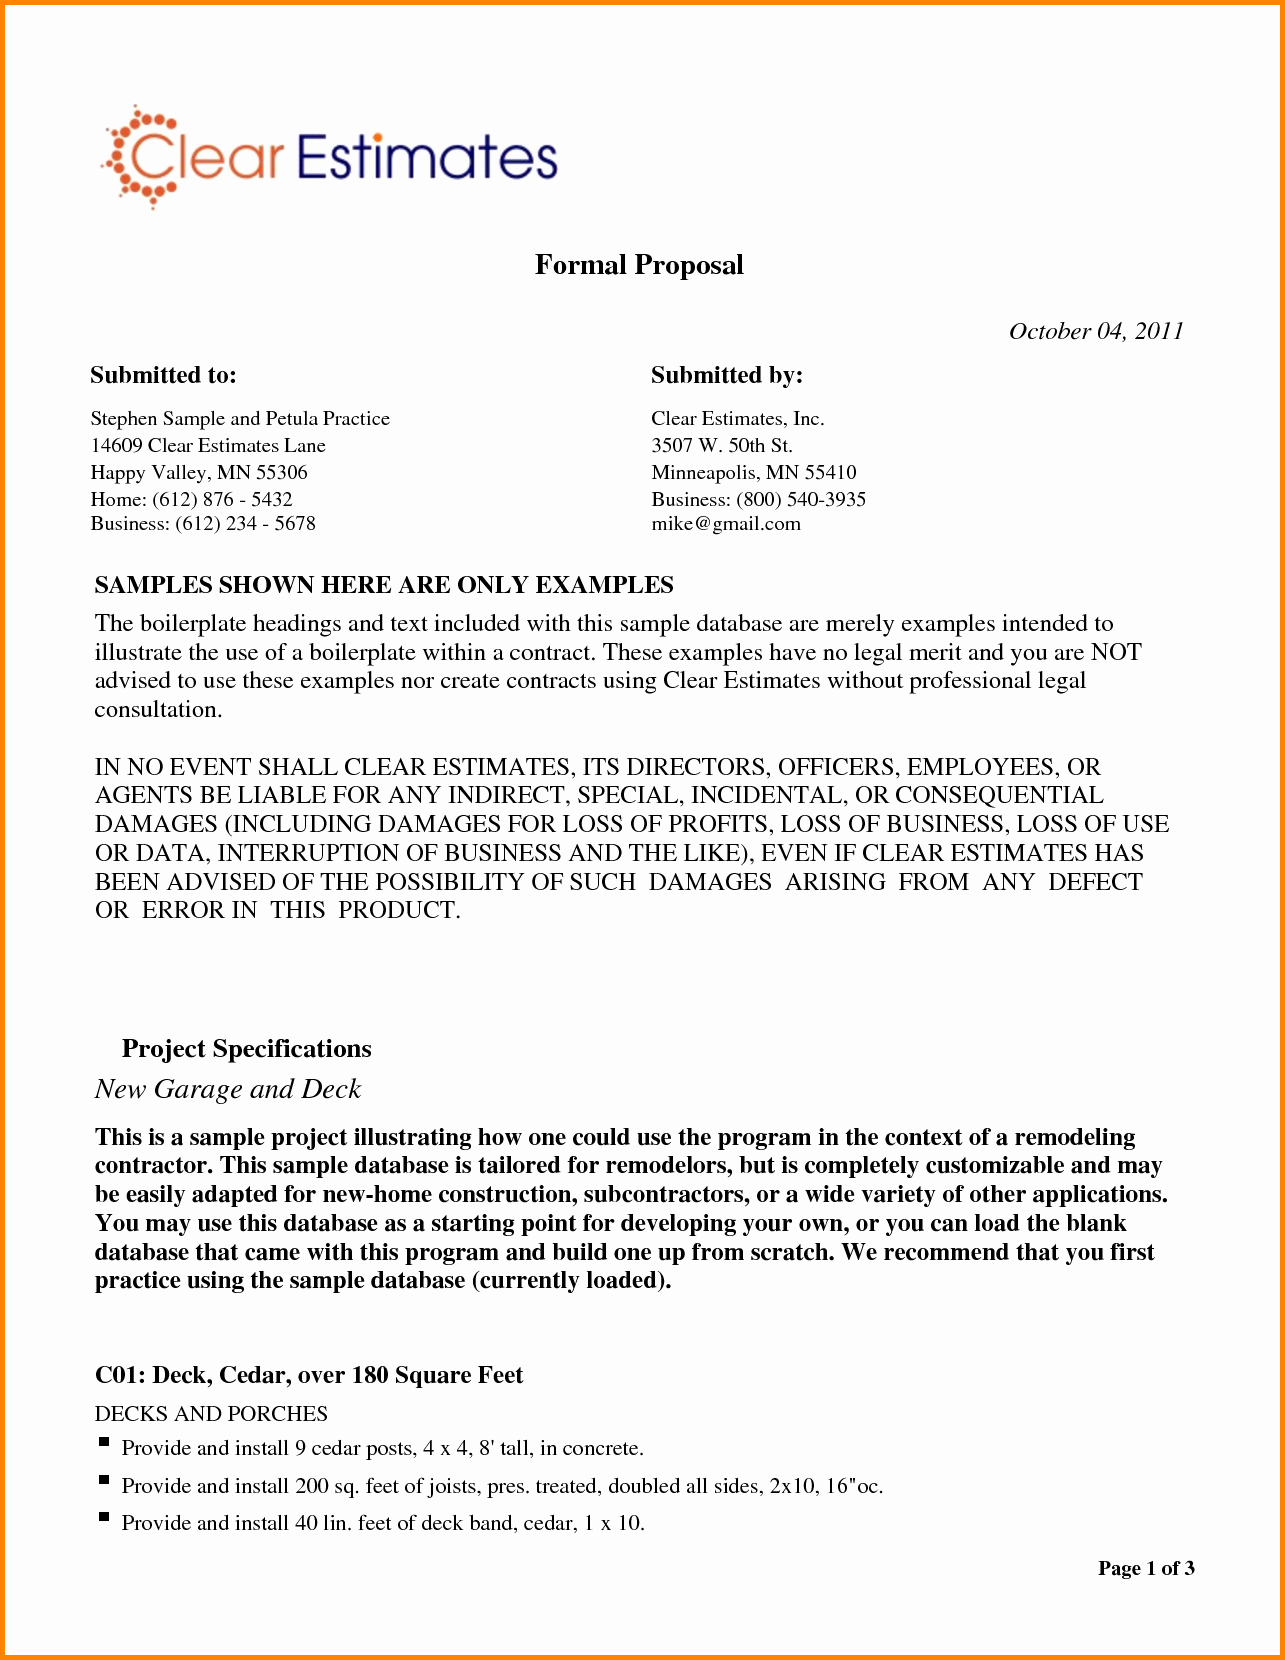 Business Report format Template Inspirational formal Business Report Template Portablegasgrillweber